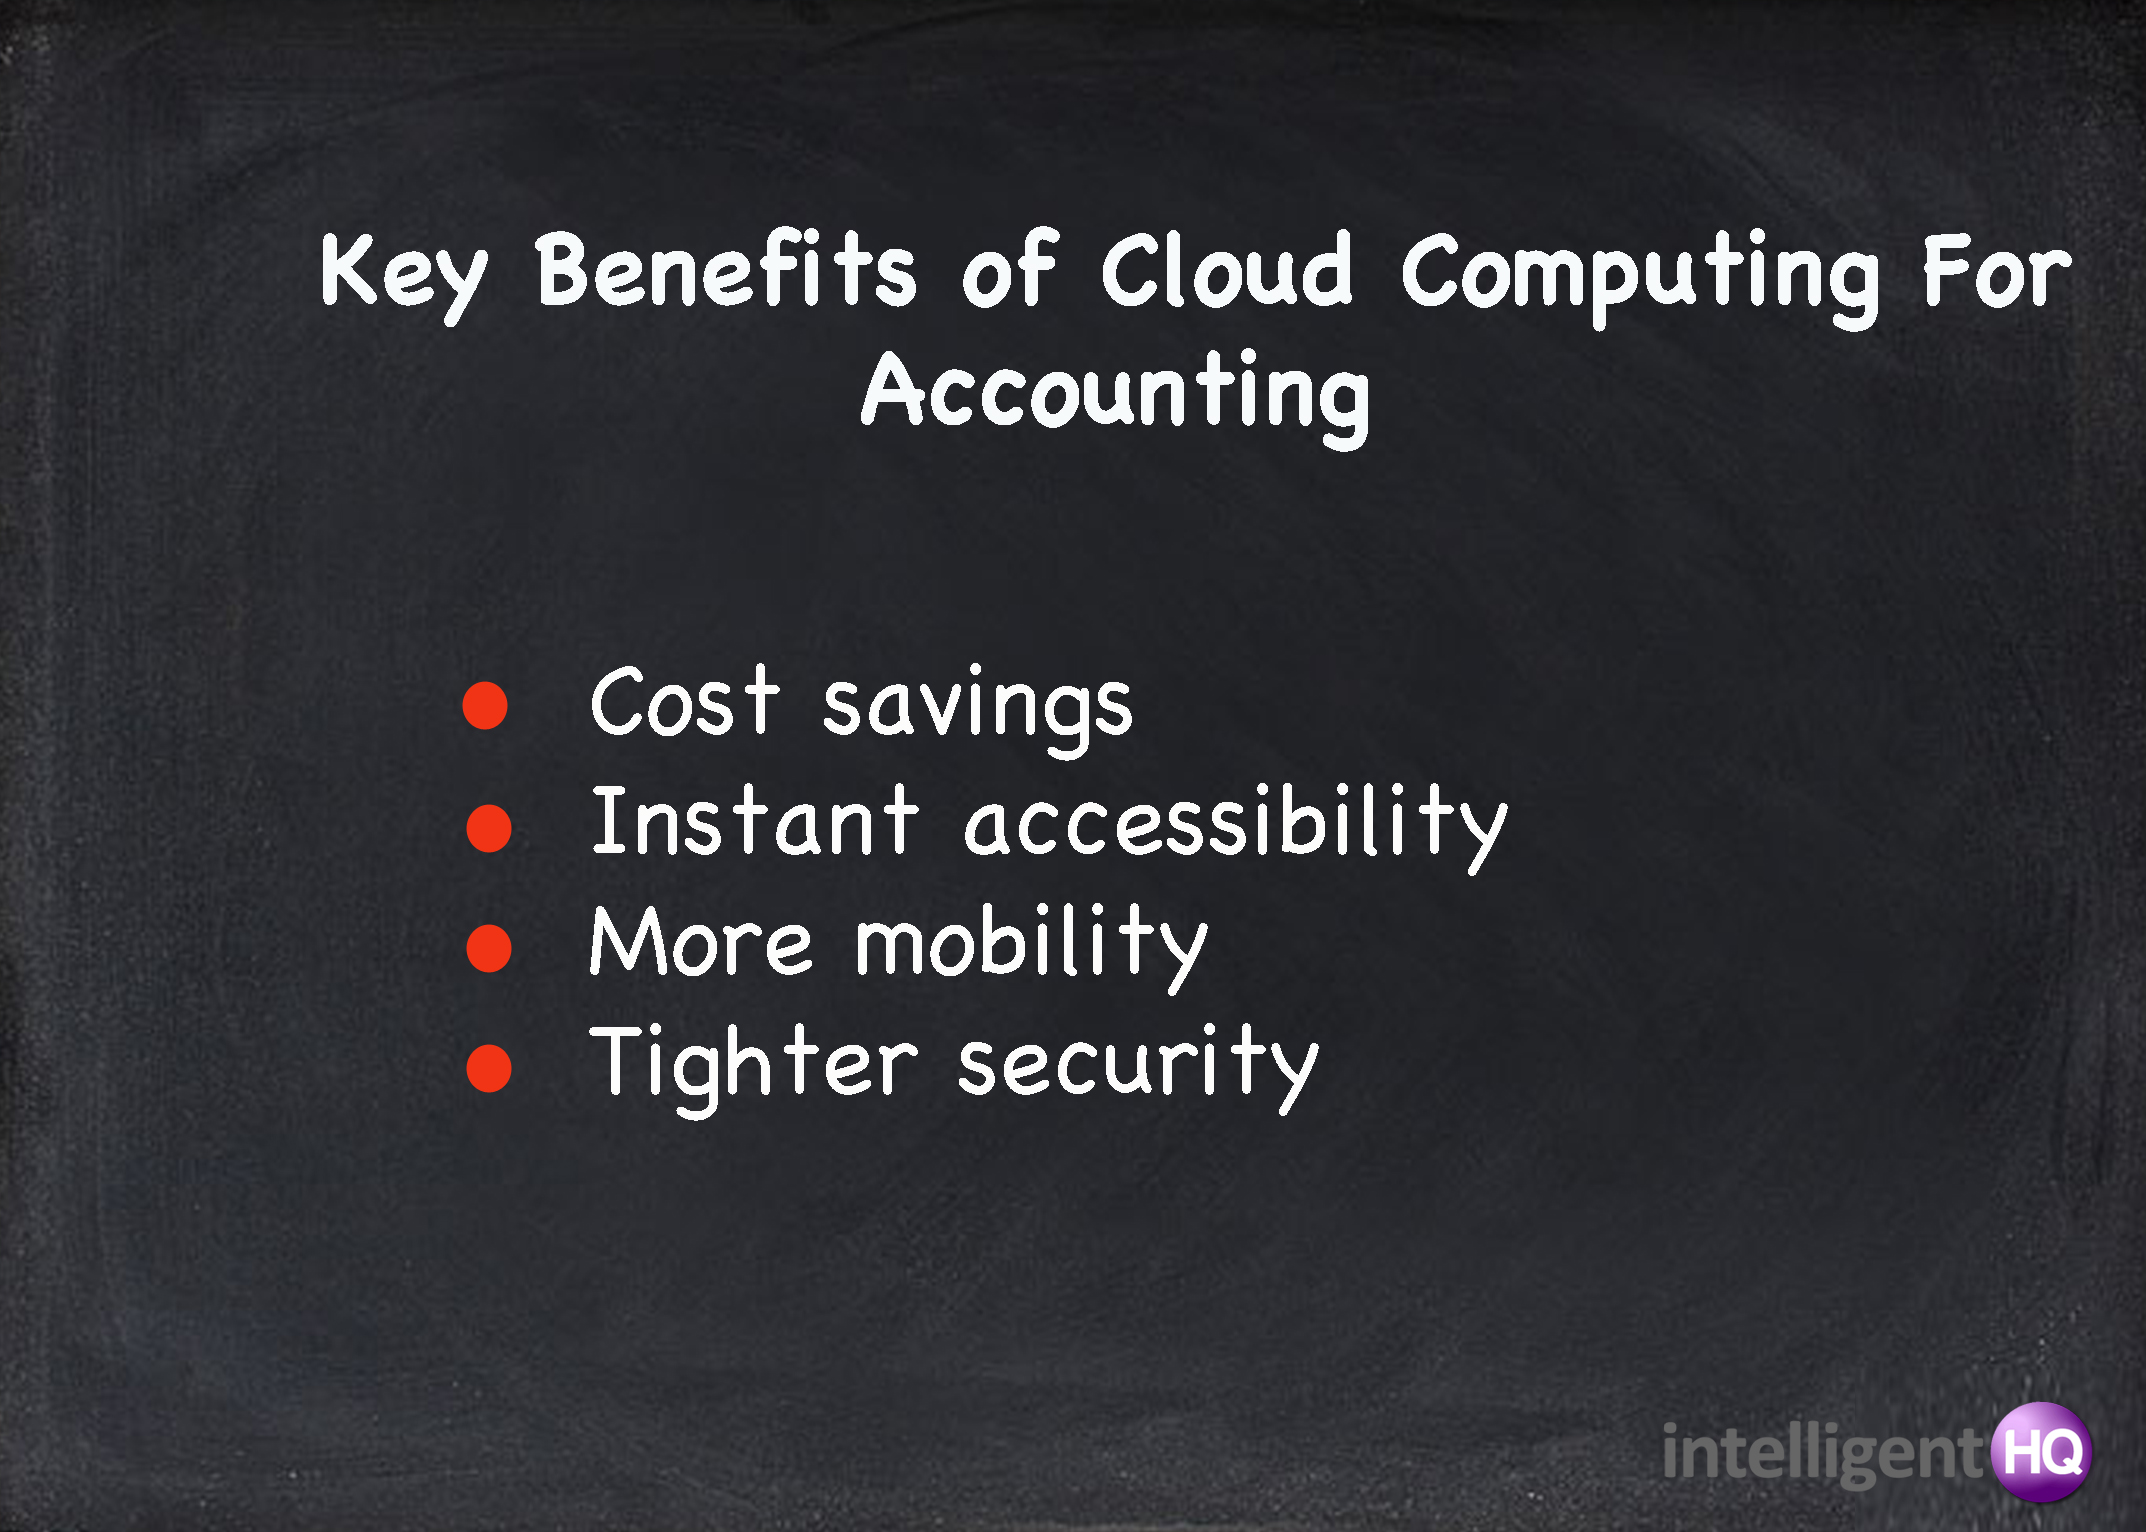 key benefits of clound for accounting Intelligenthq